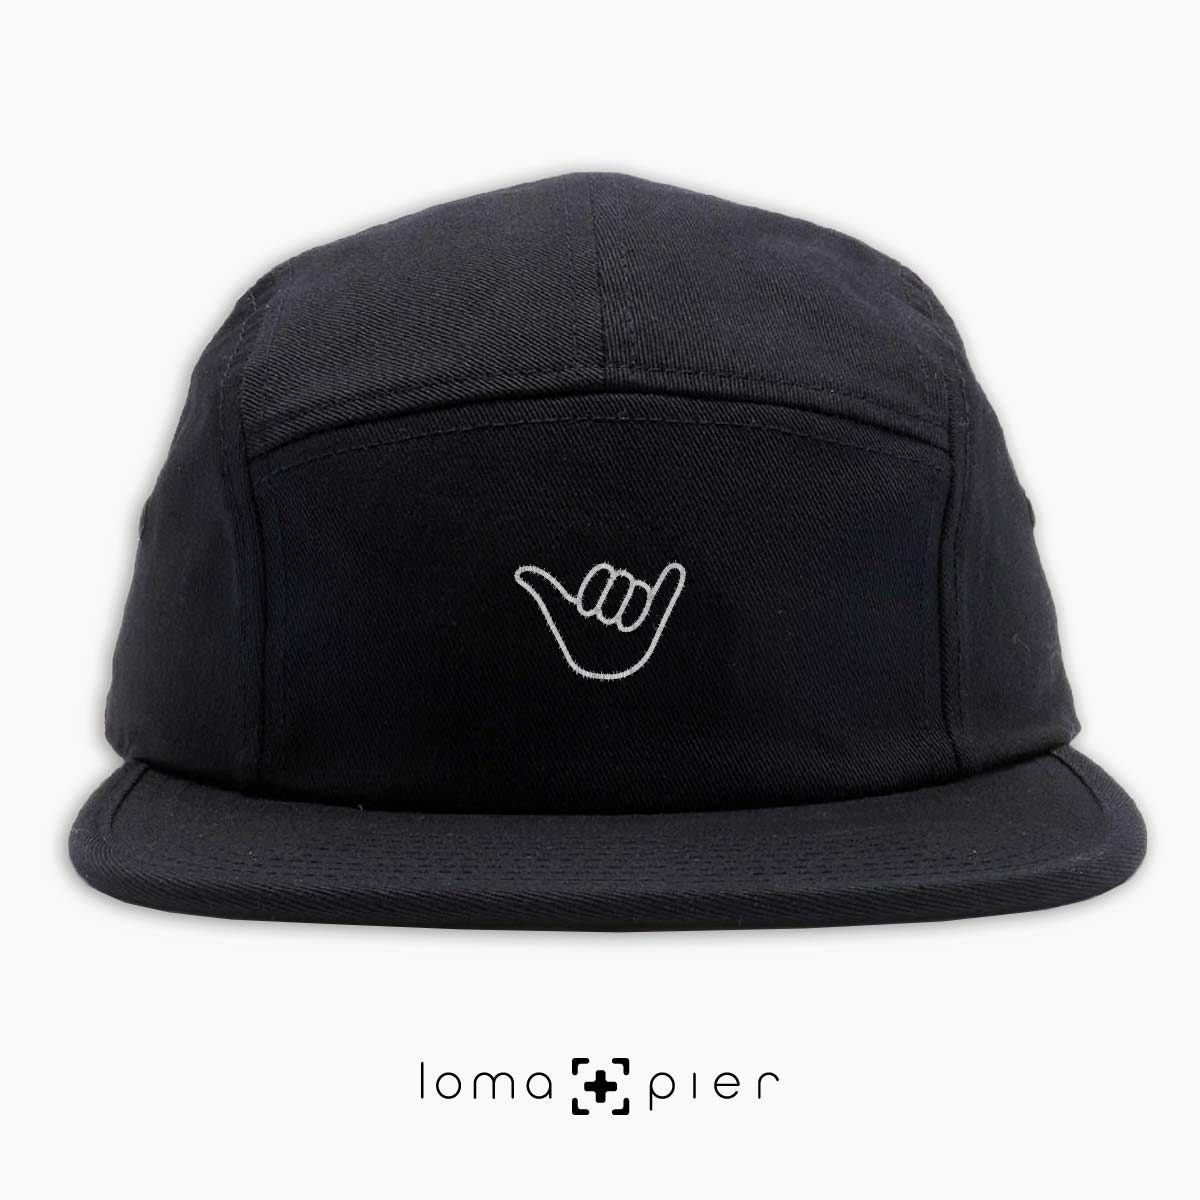 HANG LOOSE icon embroidered on a black cotton 5-panel hat by loma+pier hat store